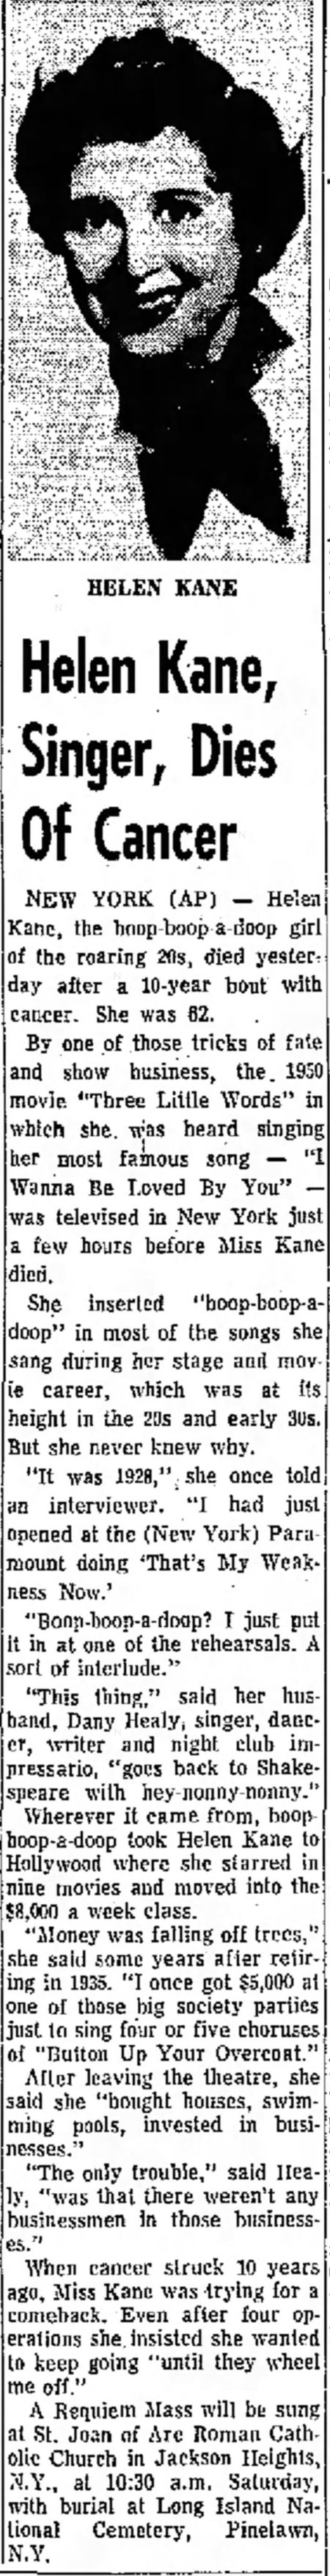 helen-kane-660927-the-times-record-of-troy-NY-p17